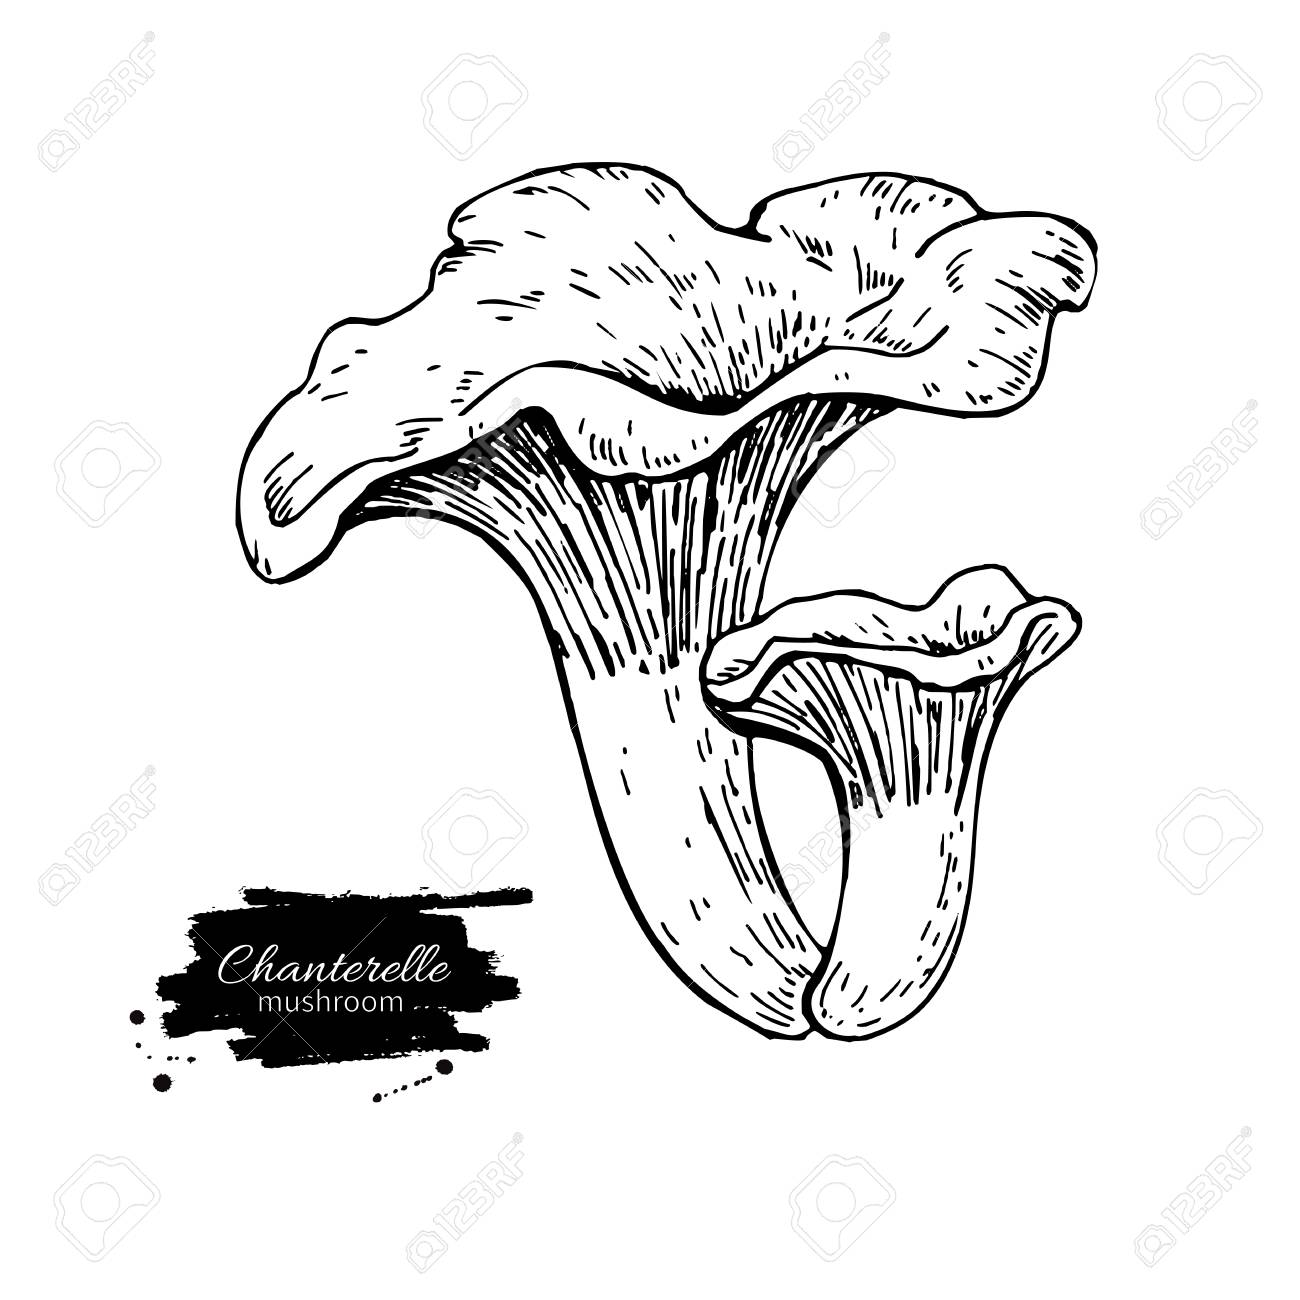 1300x1300 Chanterelle Mushroom Hand Drawn Vector Illustration. Sketch Food